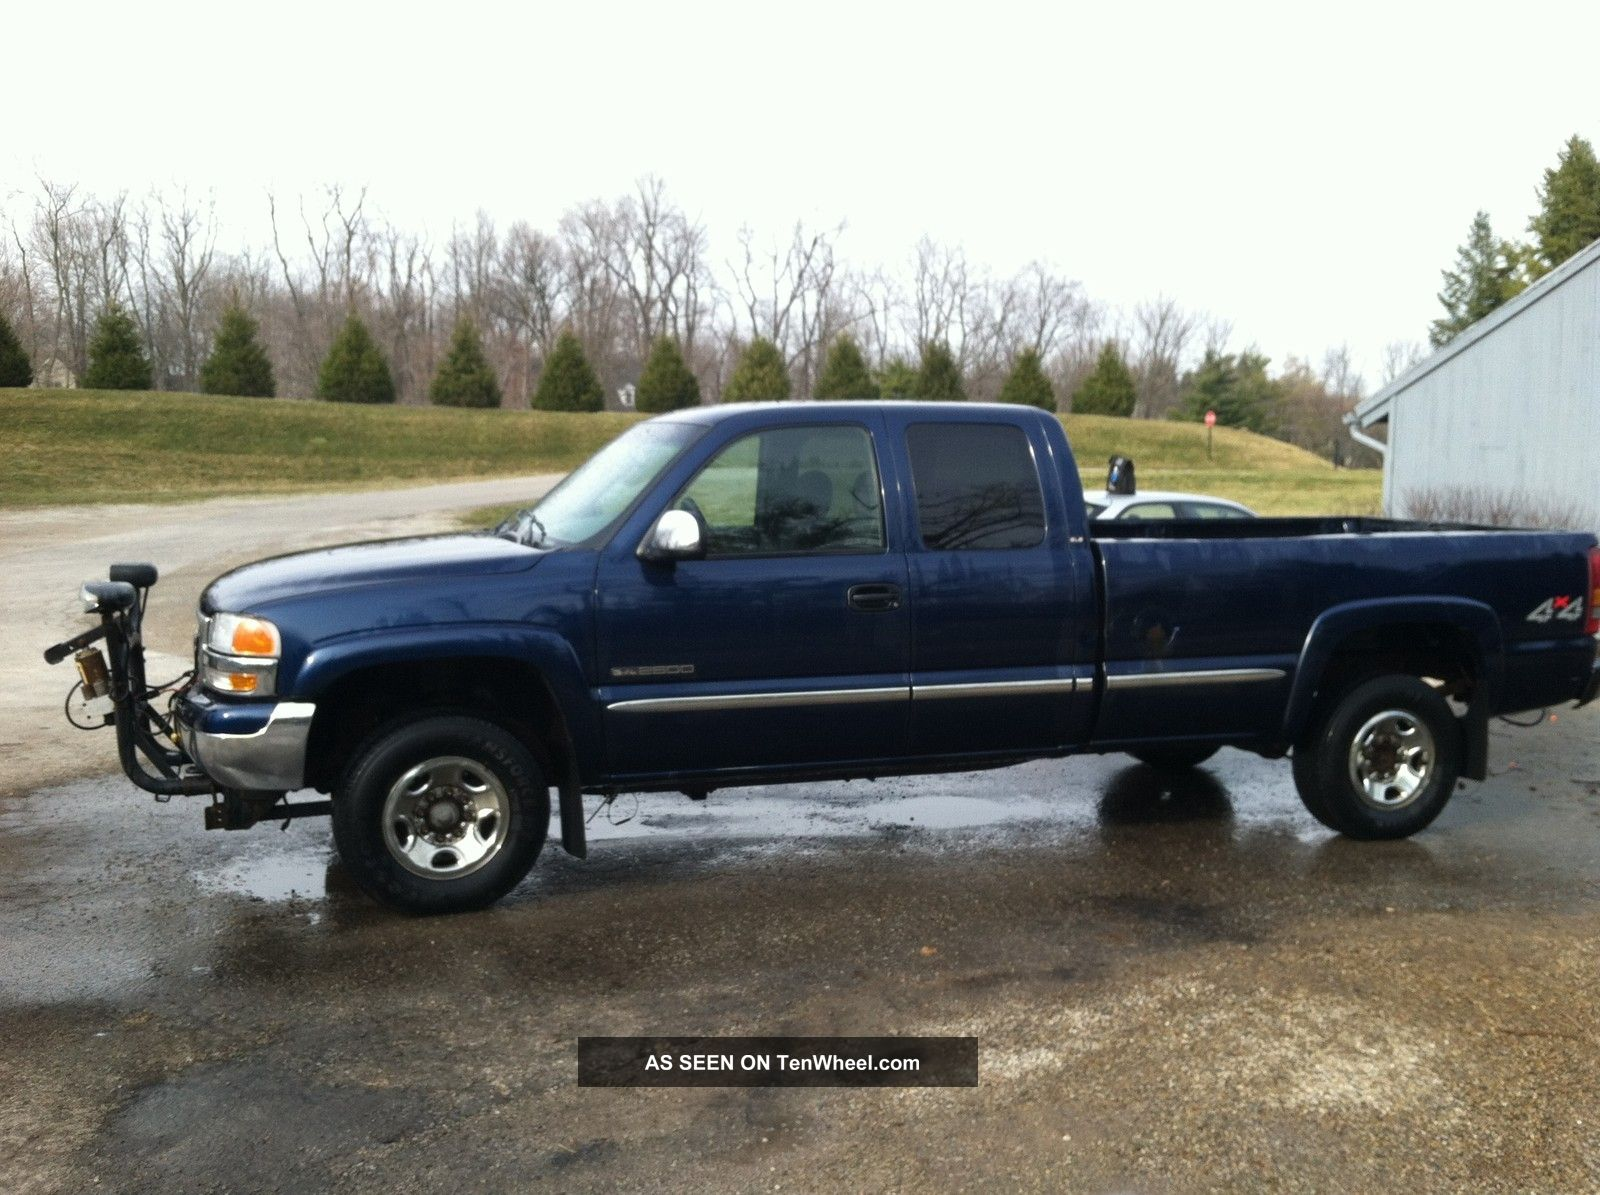 Gmc Sierra 2500 Extended Cab / Long Bed - 2000